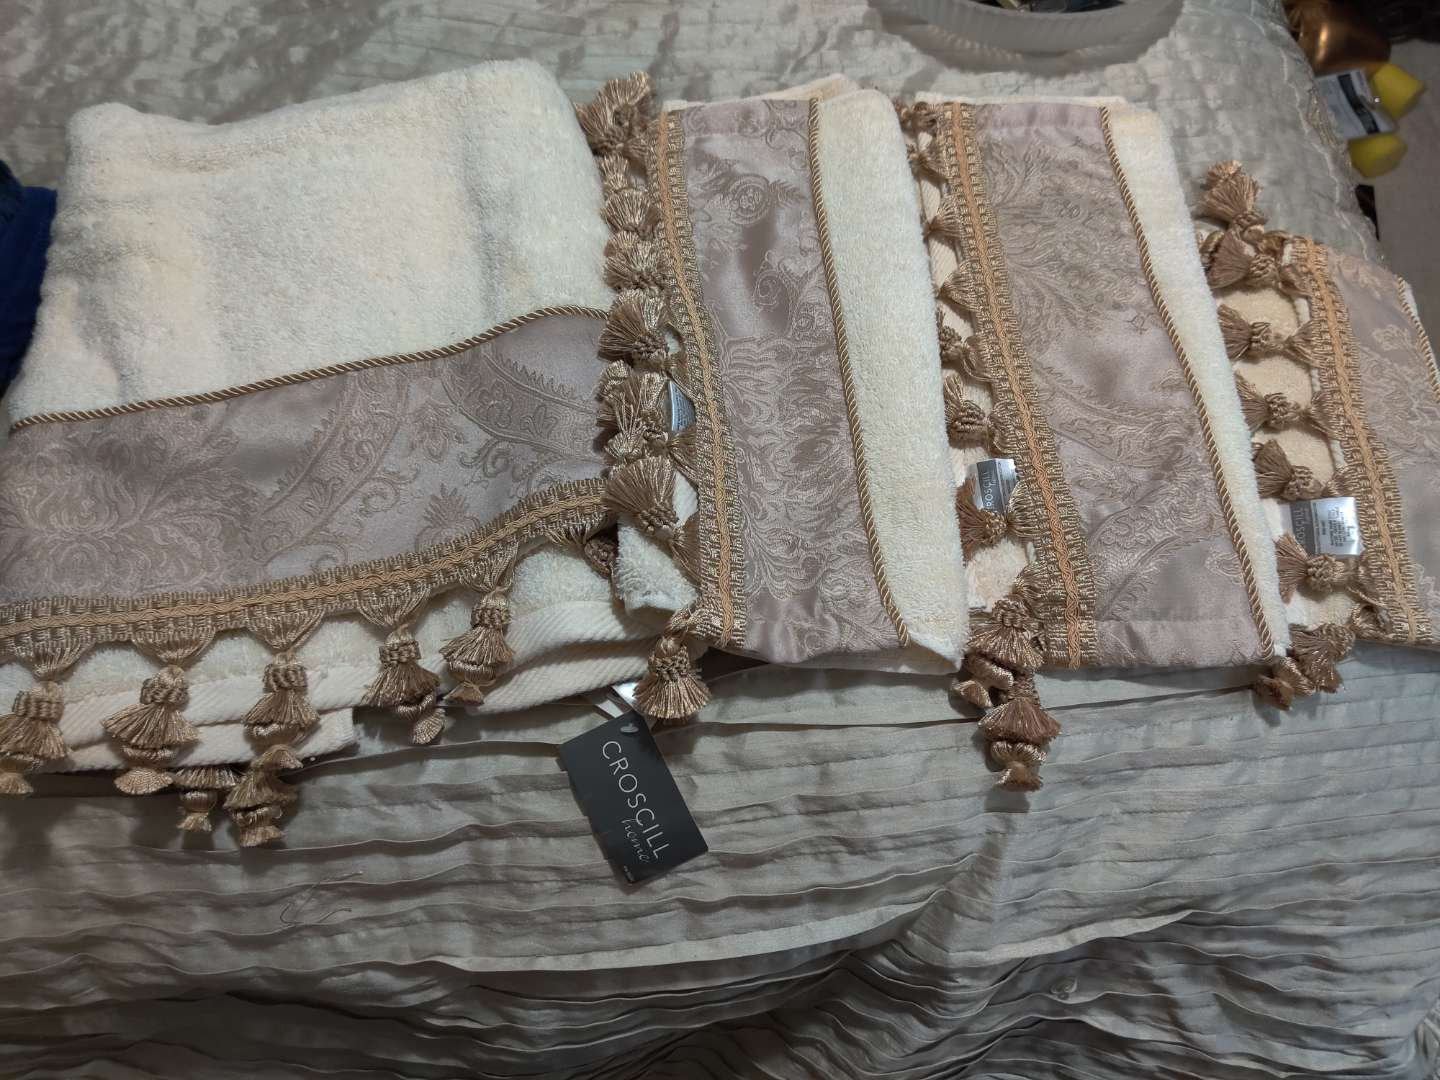 82 Coscill towel set with tags still on it very nice